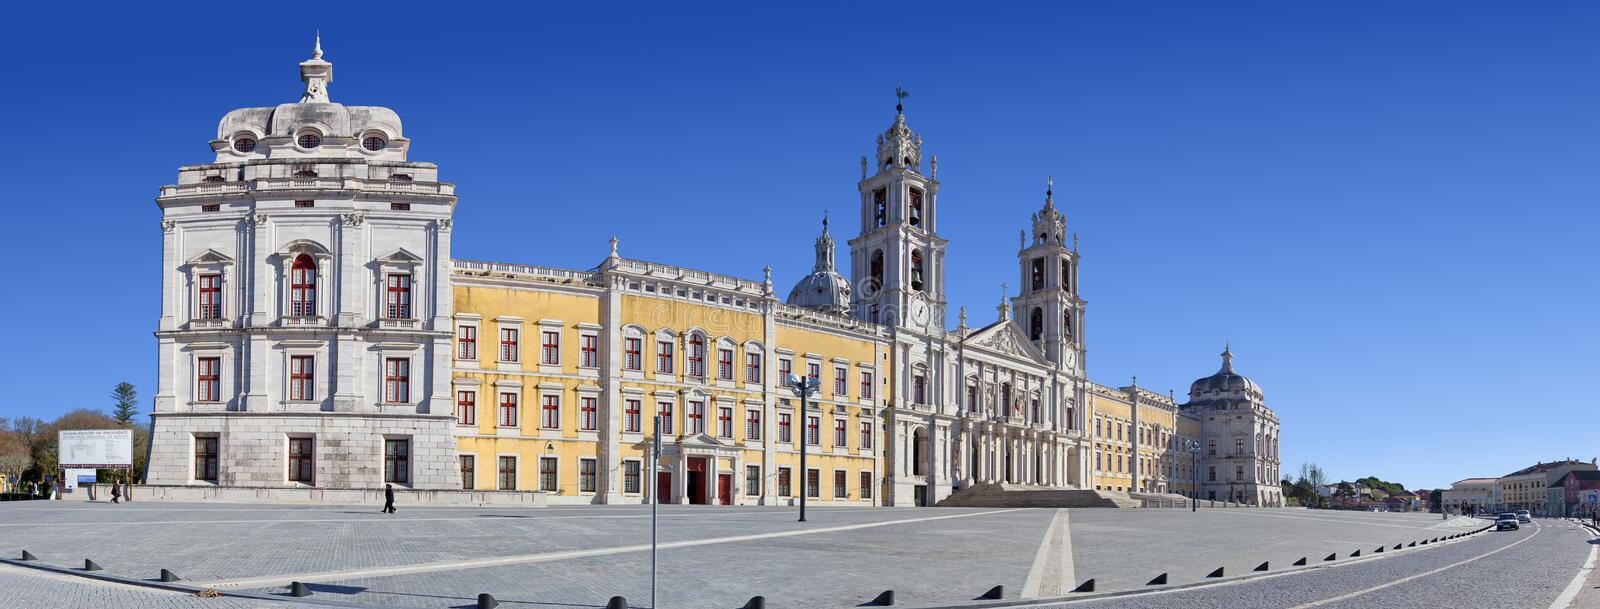 Mafra National Palace, Convent and Basilica. Mafra, Portugal - September 02, 2013: Locals stroll in front of the Mafra National Palace, Convent and Basilica royalty free stock images